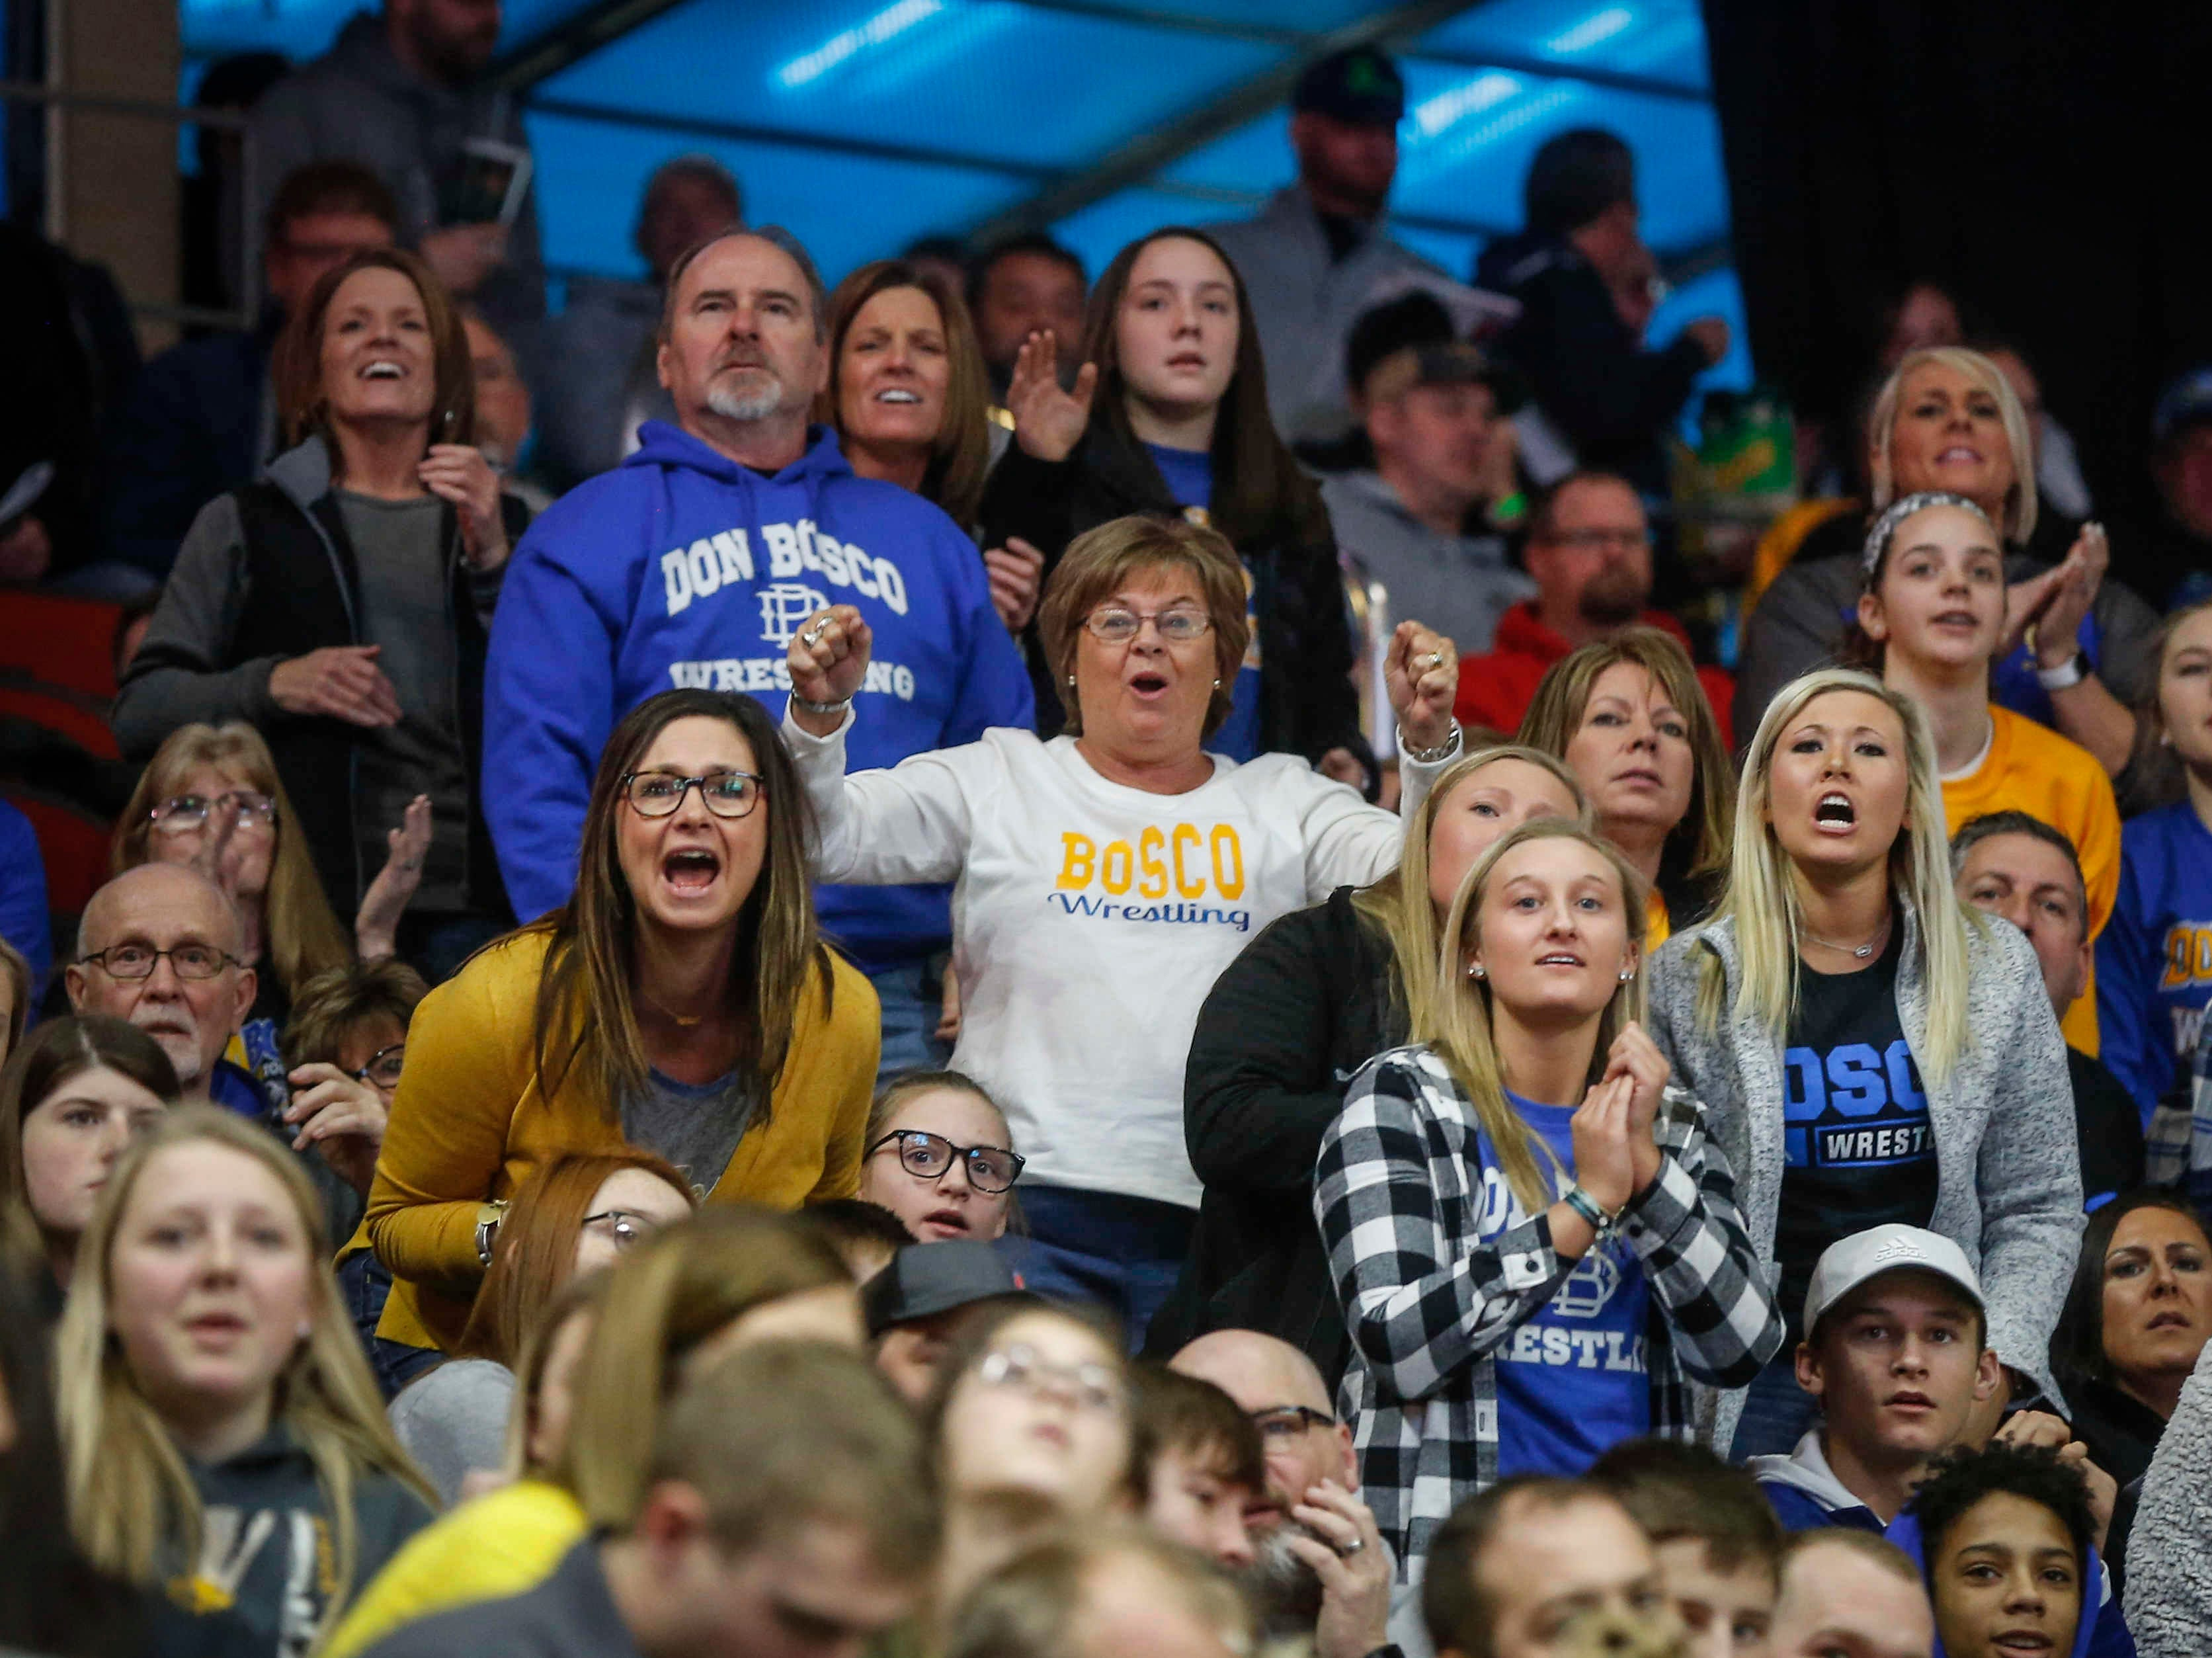 Don Bosco fans cheer during the state wrestling quarterfinals on Friday, Feb. 15, 2019, at Wells Fargo Arena in Des Moines.